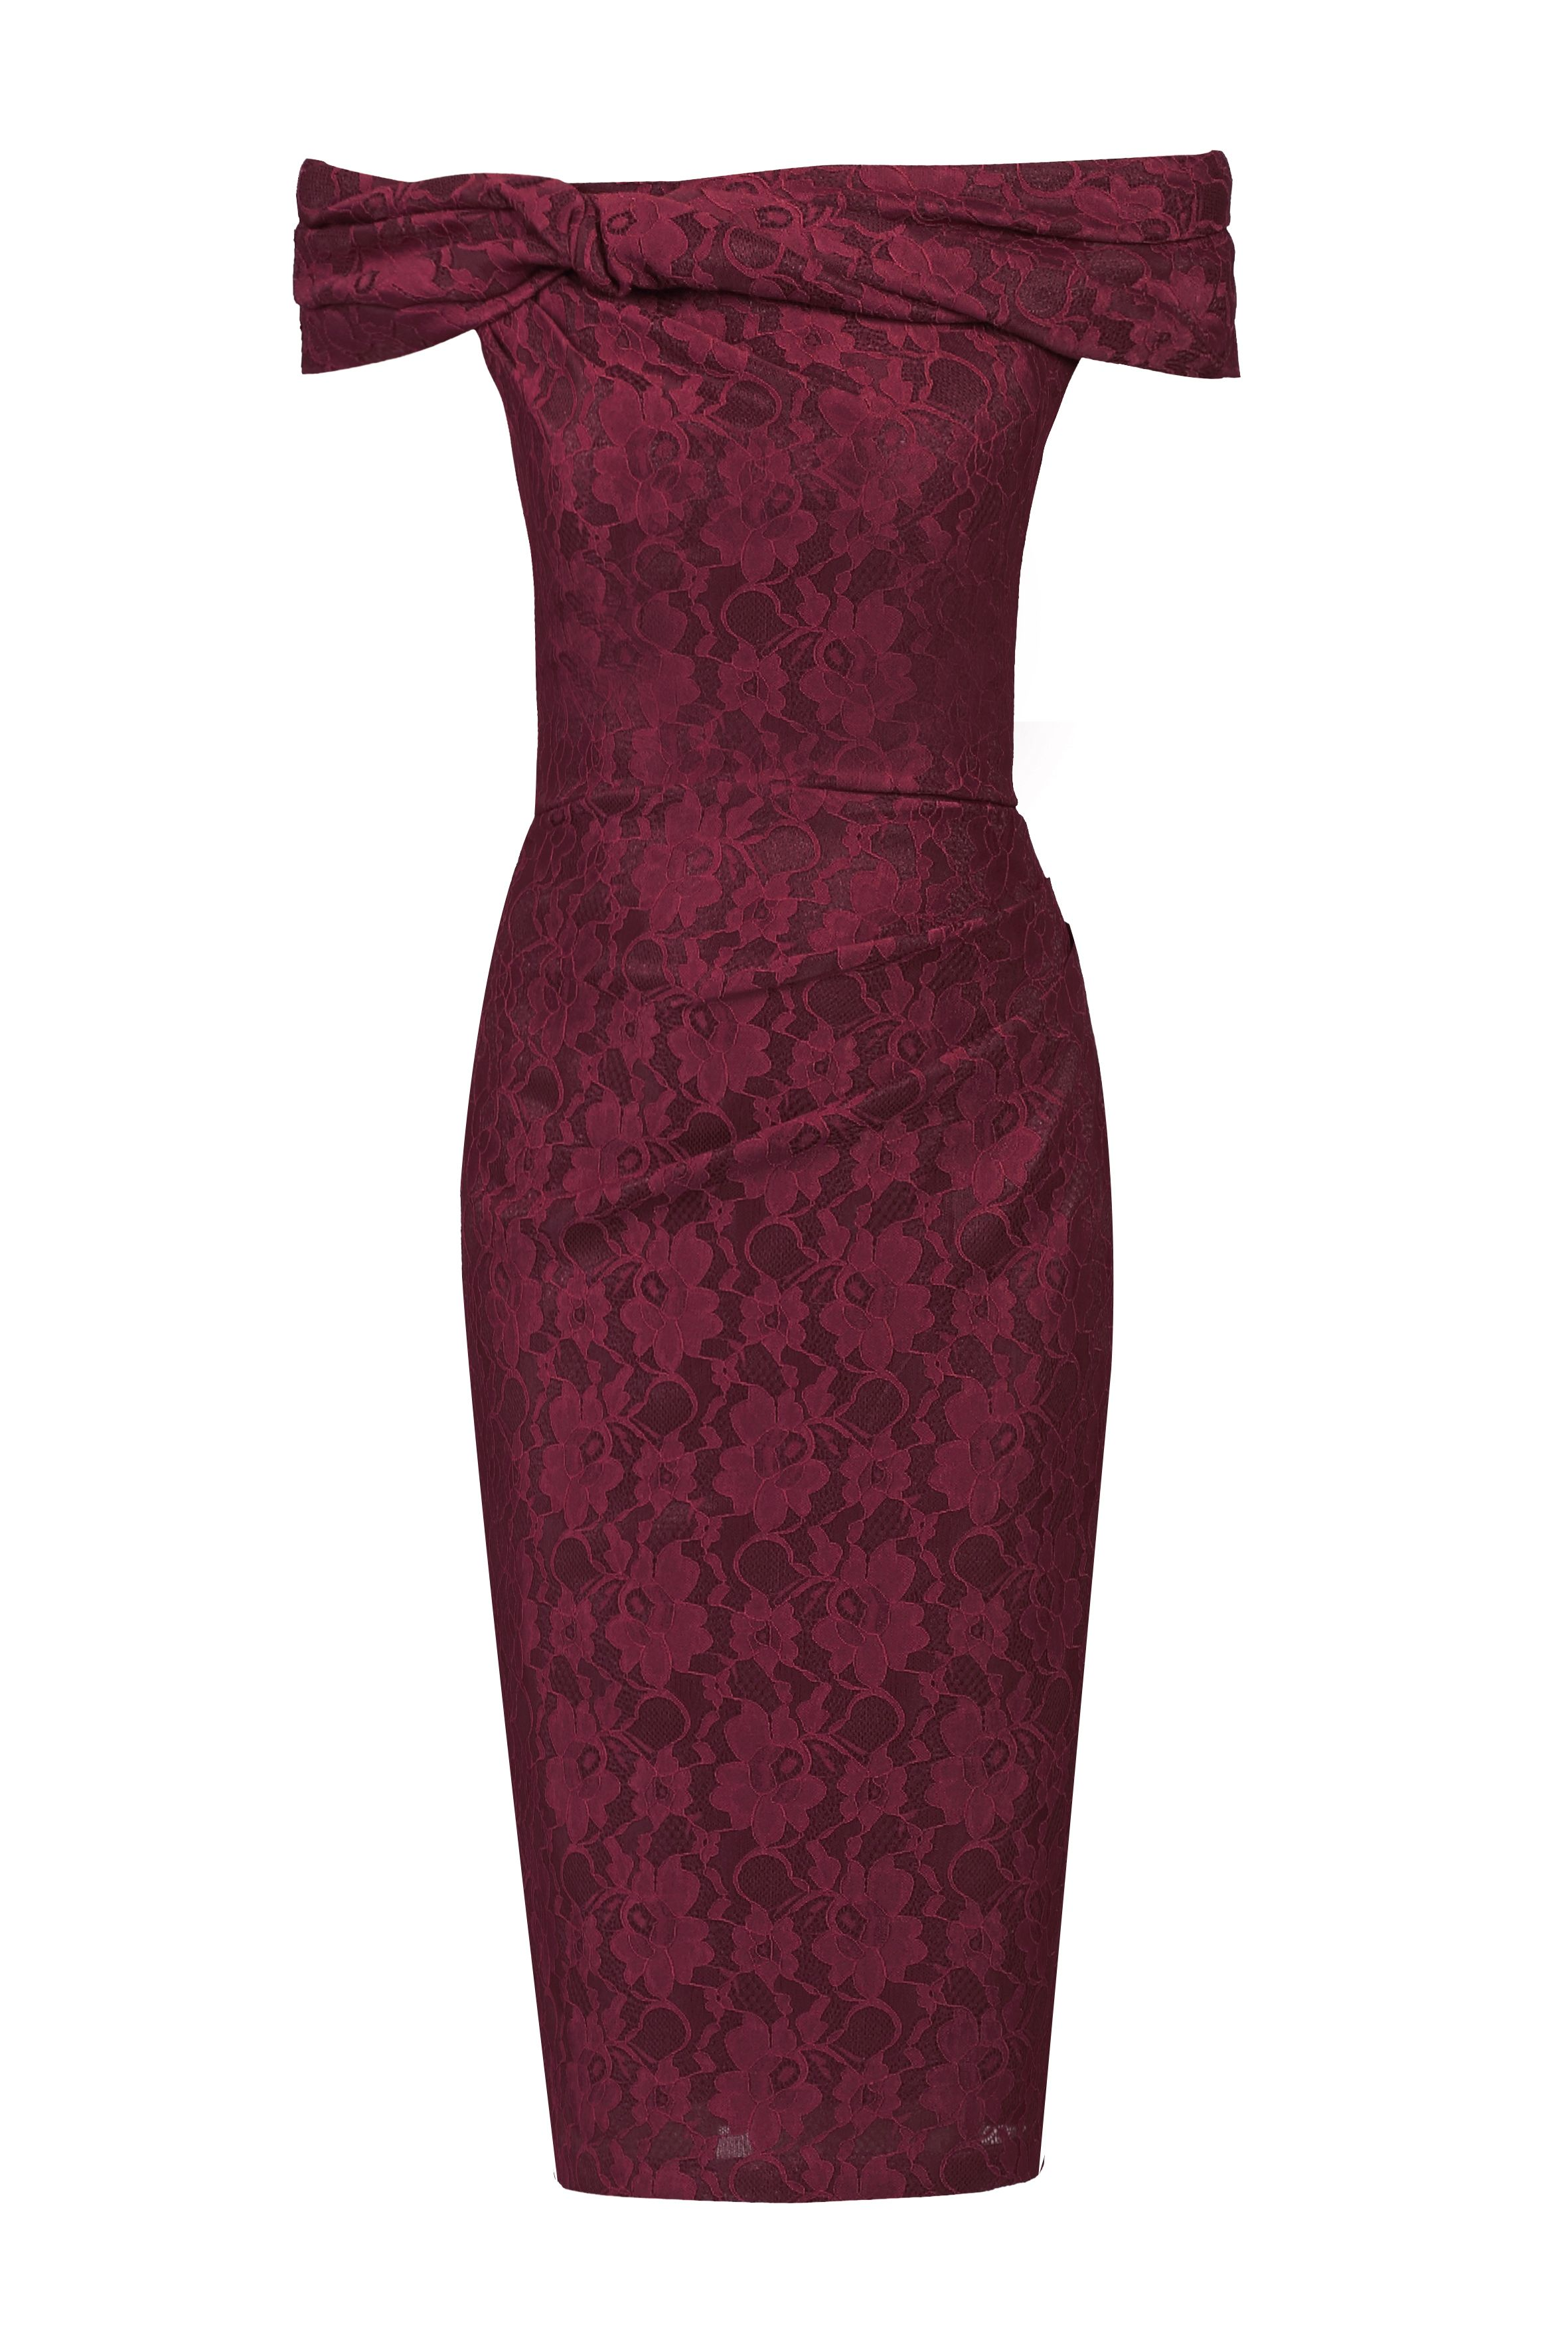 Jolie Moi Bardot Neck Ruched Lace Dress, Red